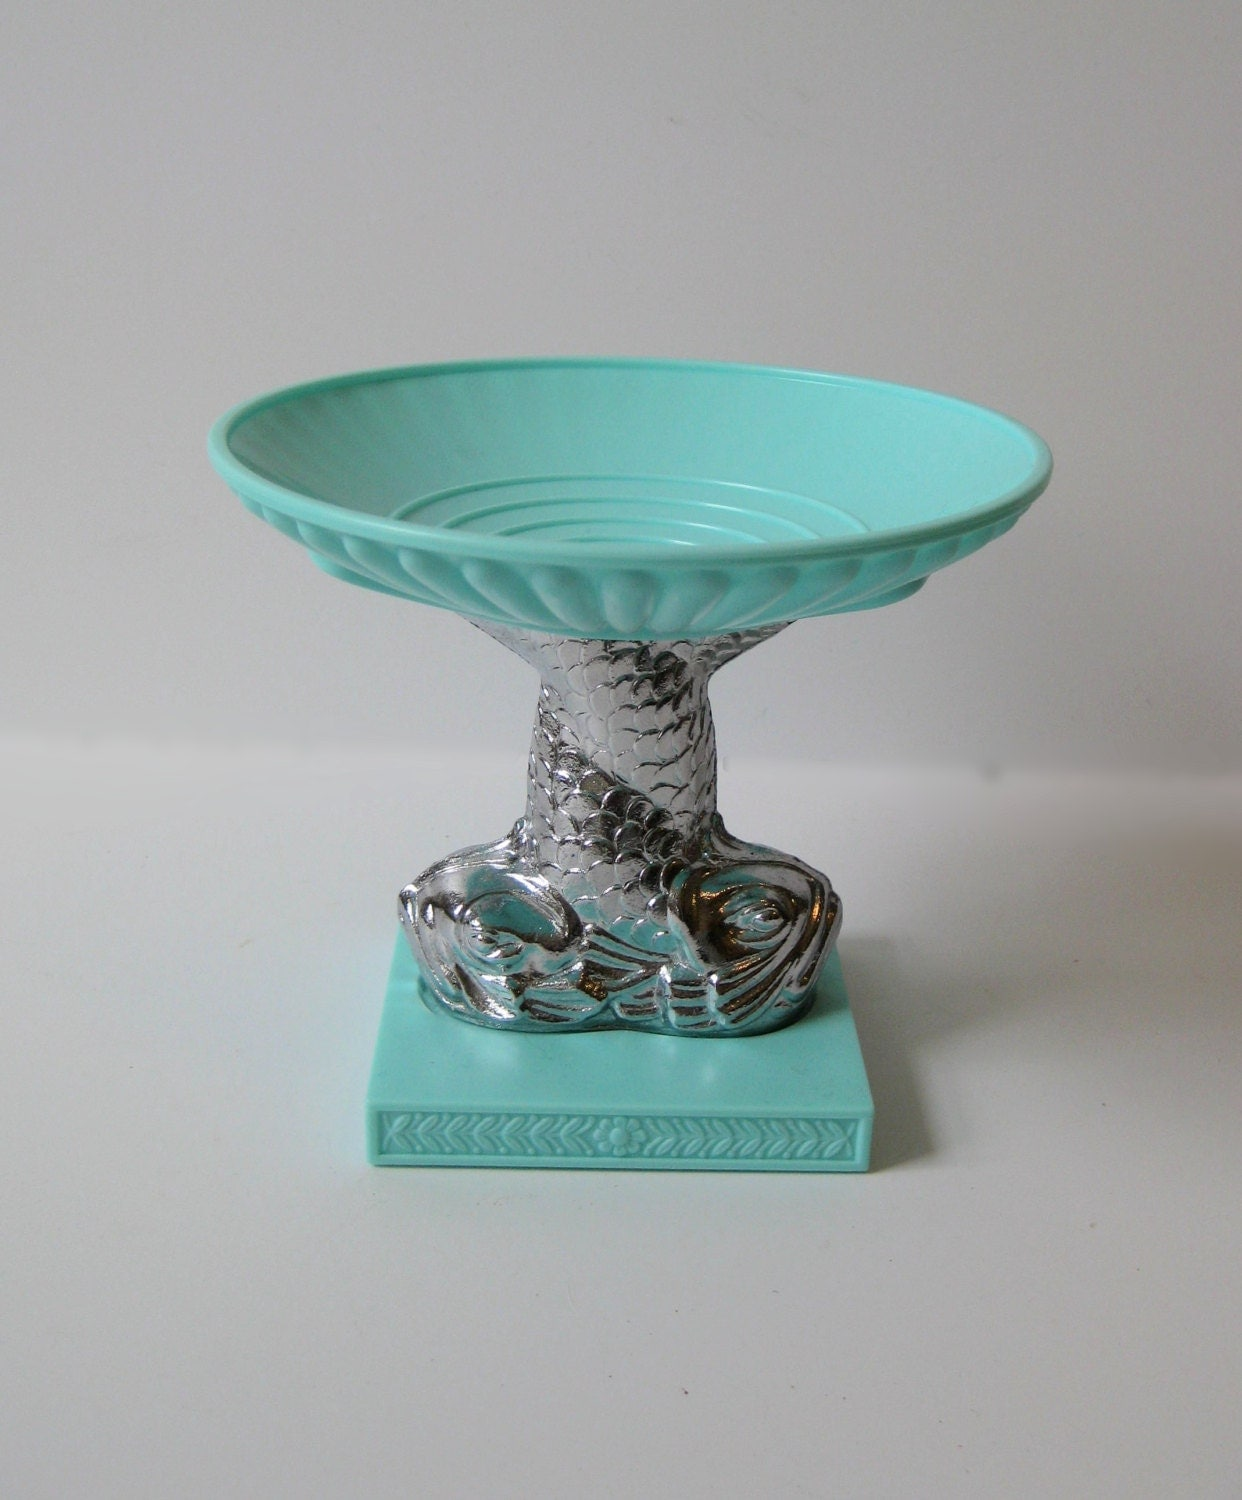 Avon soap dish turquoise bath decor vintage avon beach bath for Bathroom decor etsy